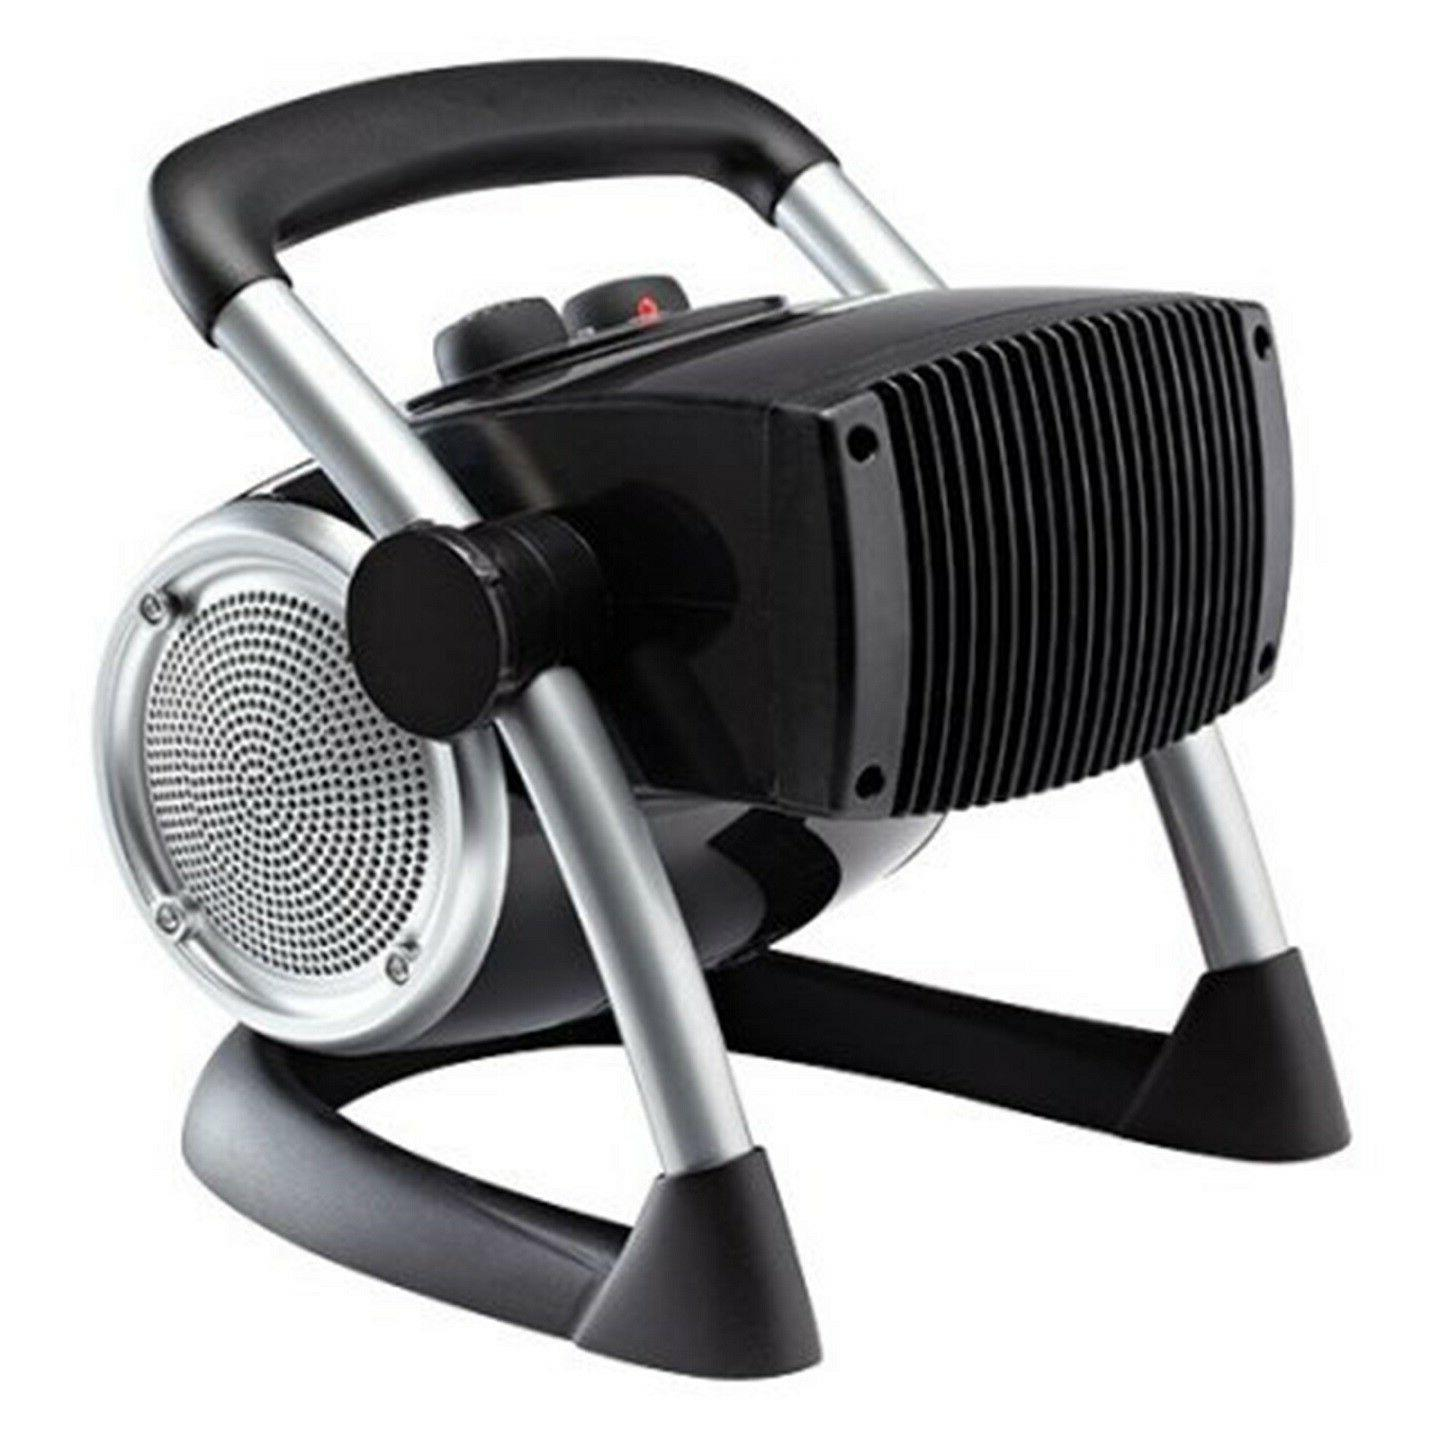 Portable Heater 1500W Home Office Garage